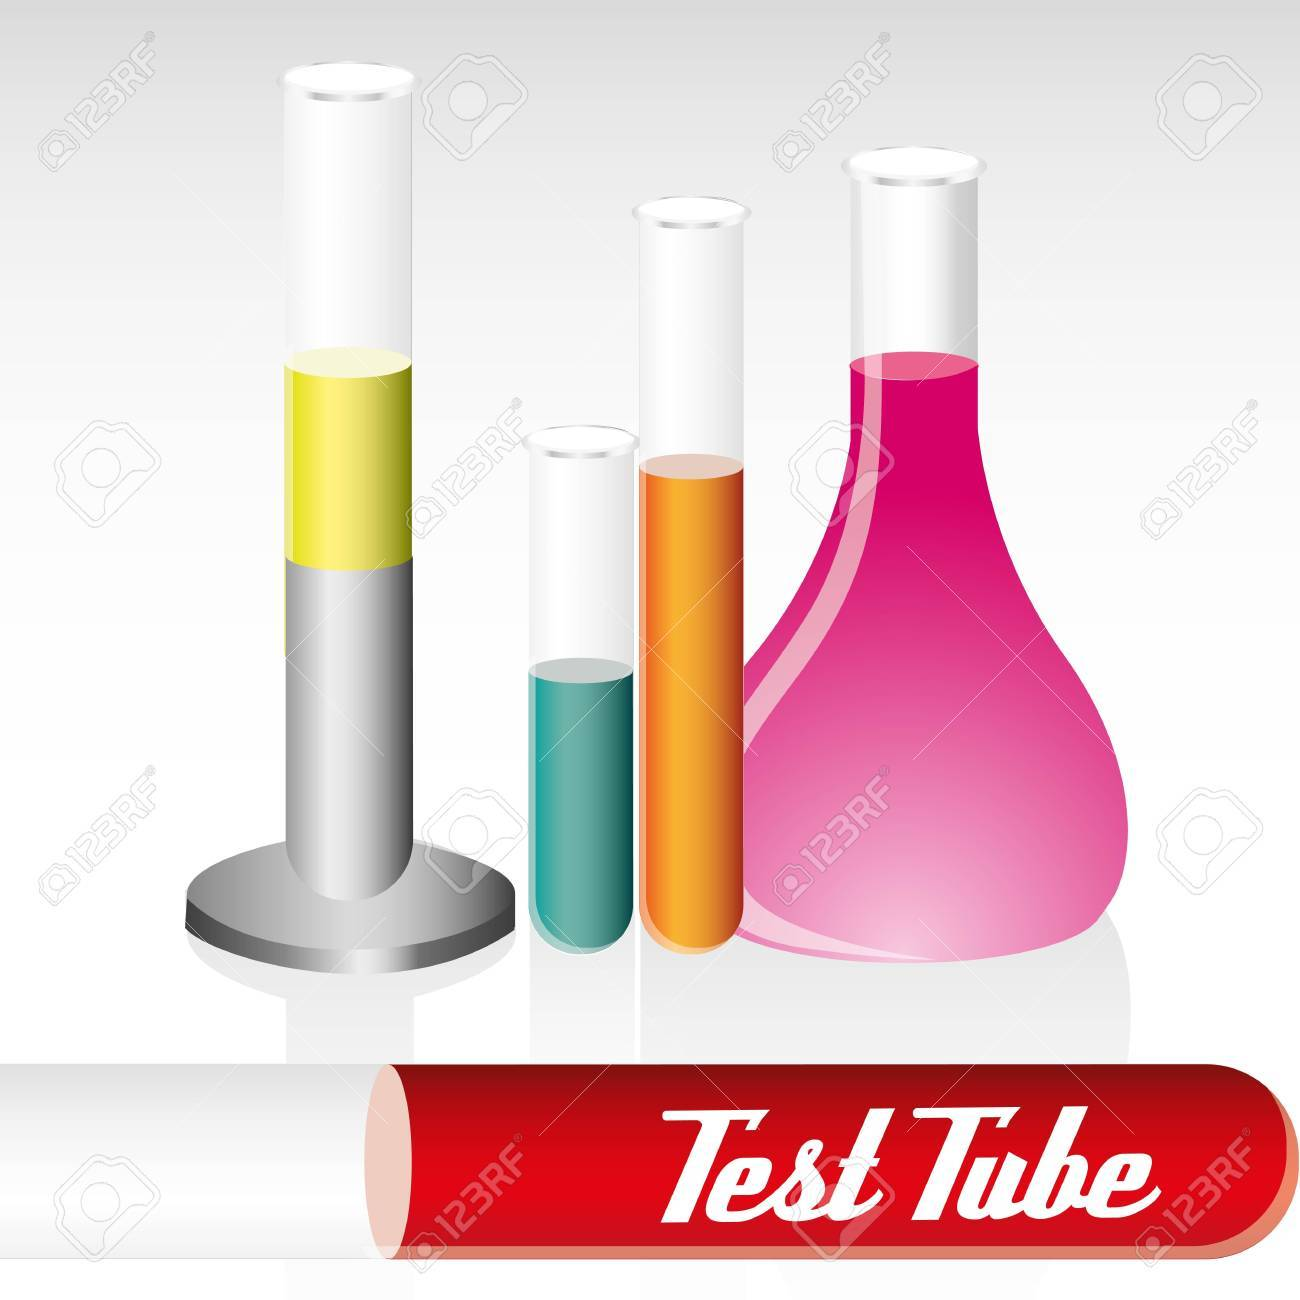 set of differents test tubes, vector illustration Stock Vector - 12756089